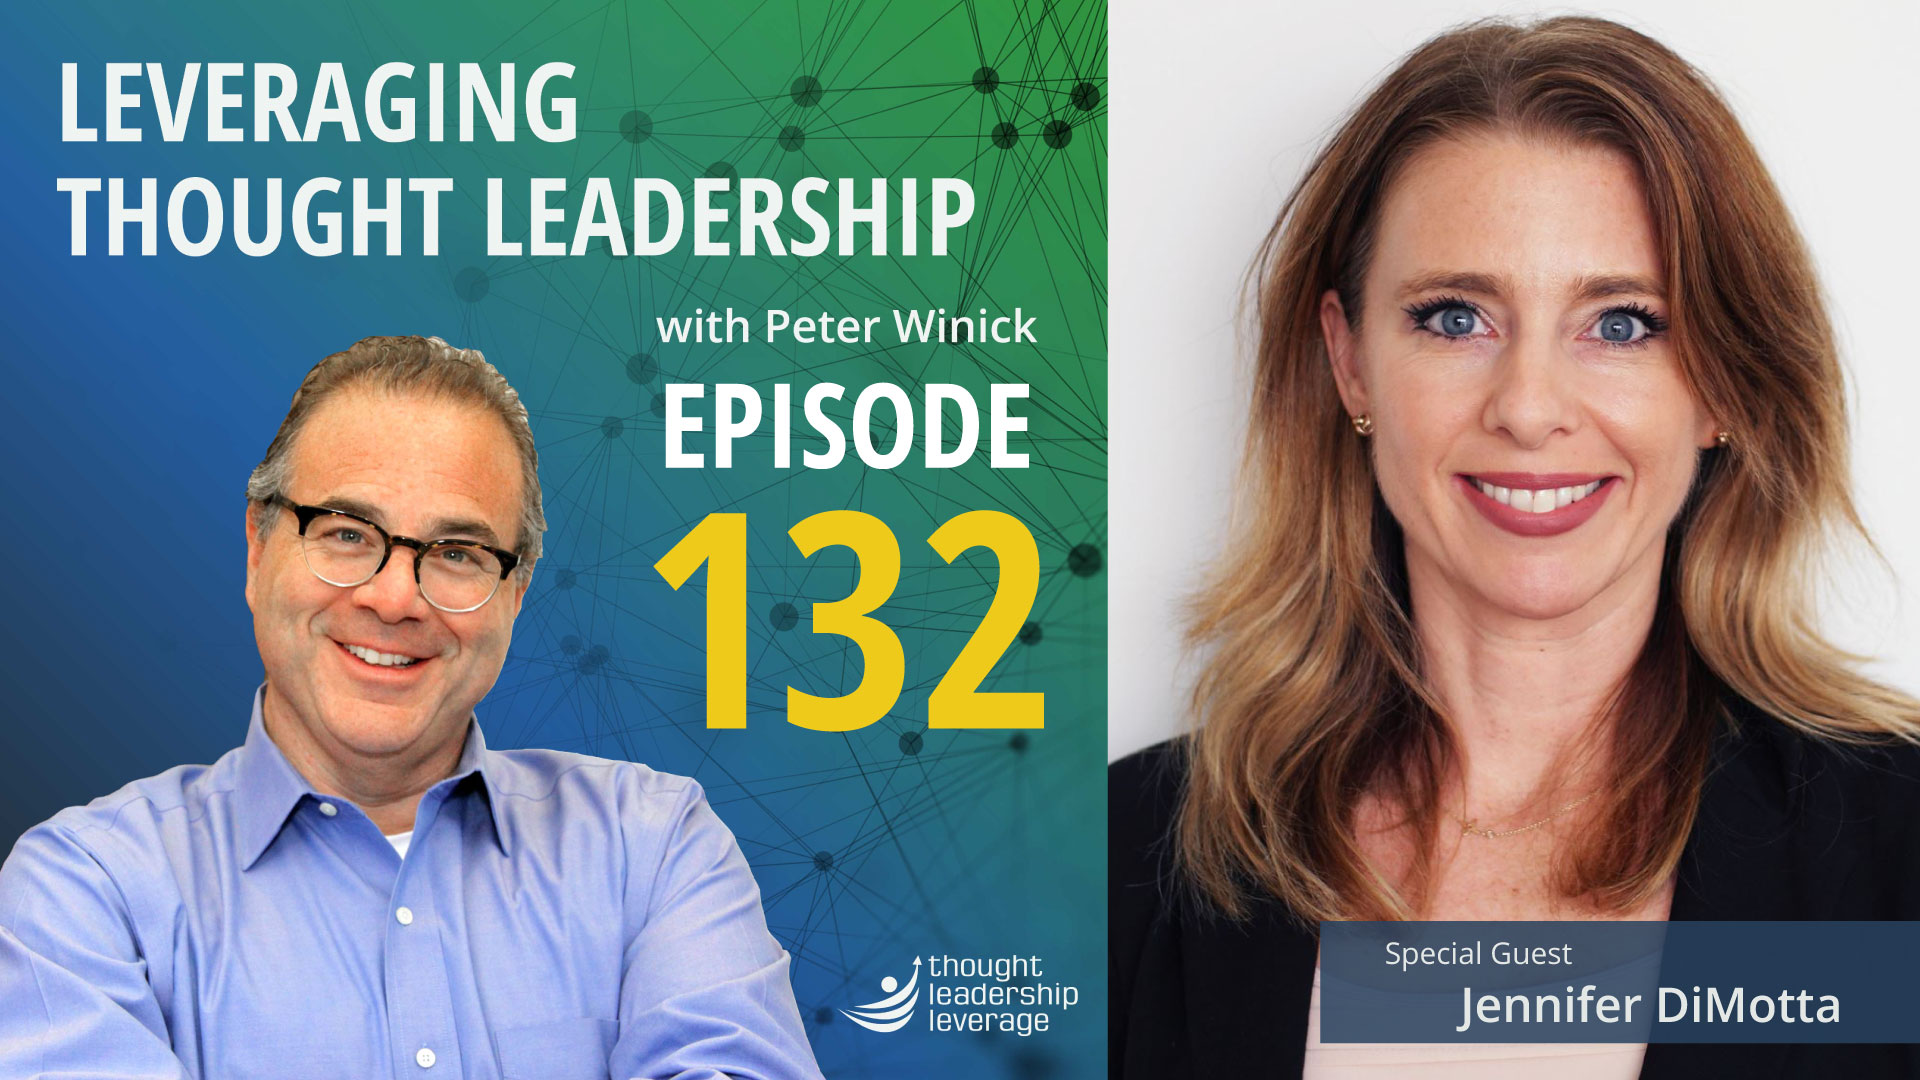 Leveraging Thought Leadership - Episode 132 - Jennifer DiMotta